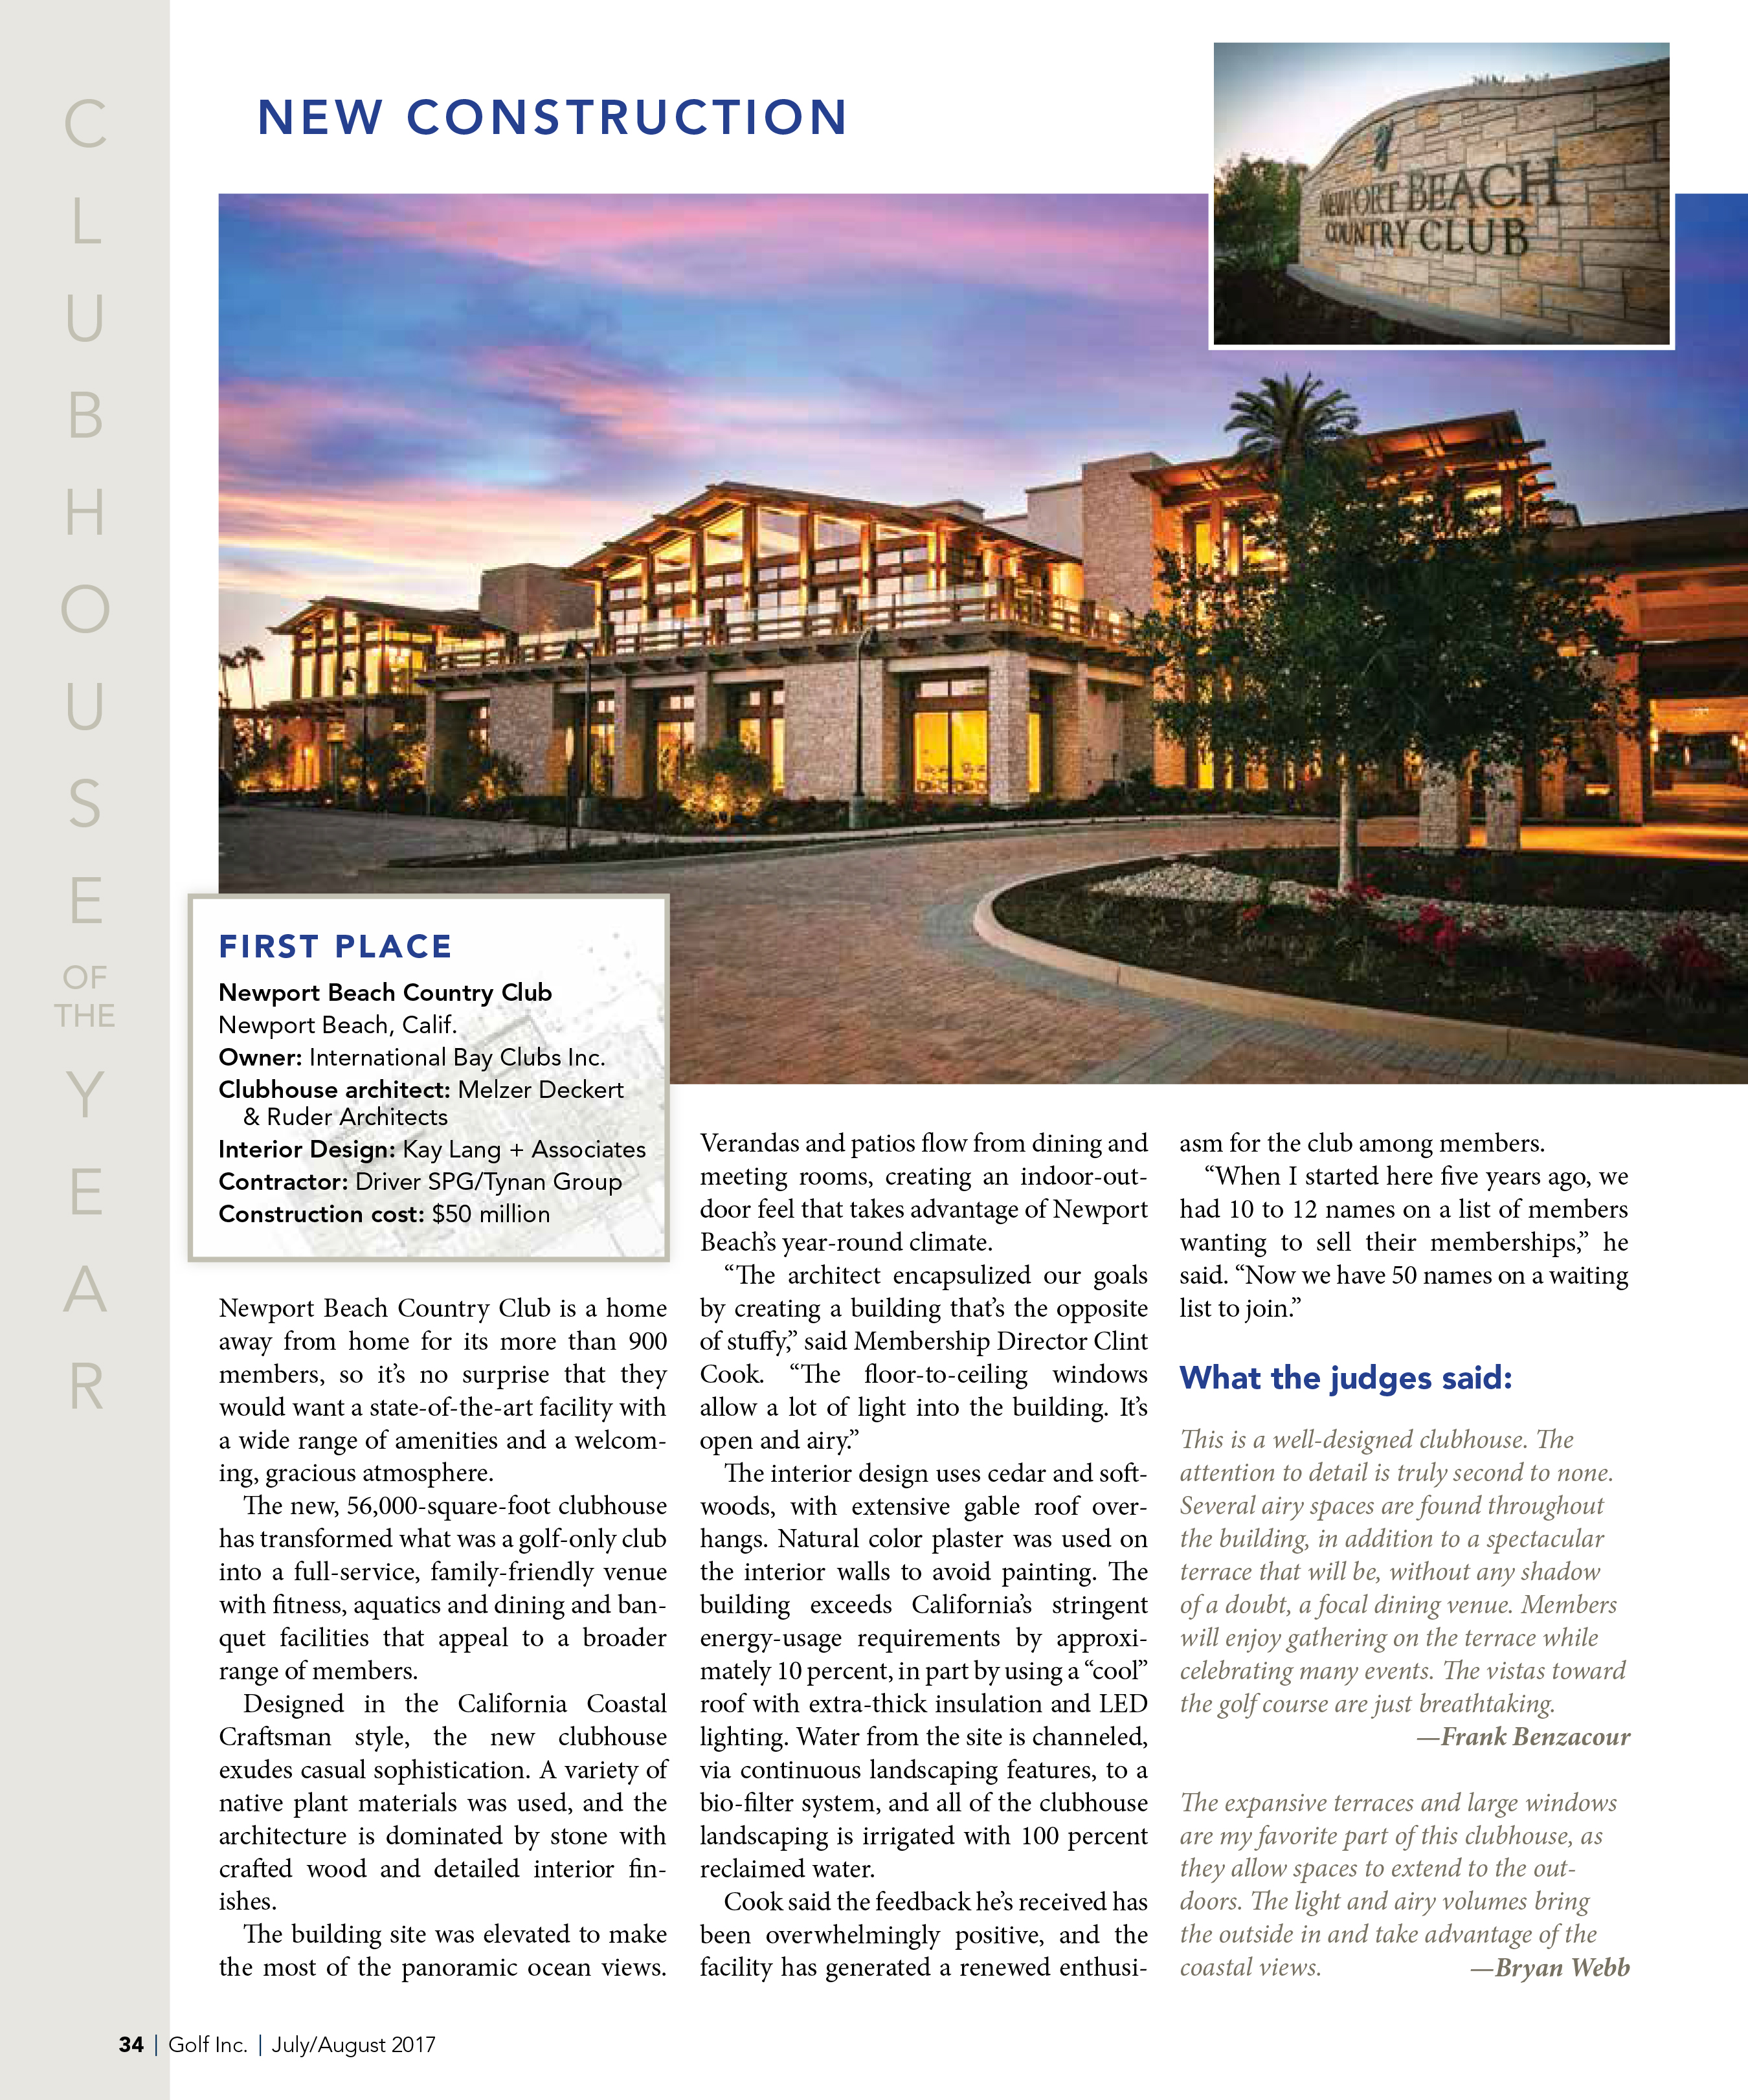 Golf Inc Clubhouse 2017_NBCC_Page_3